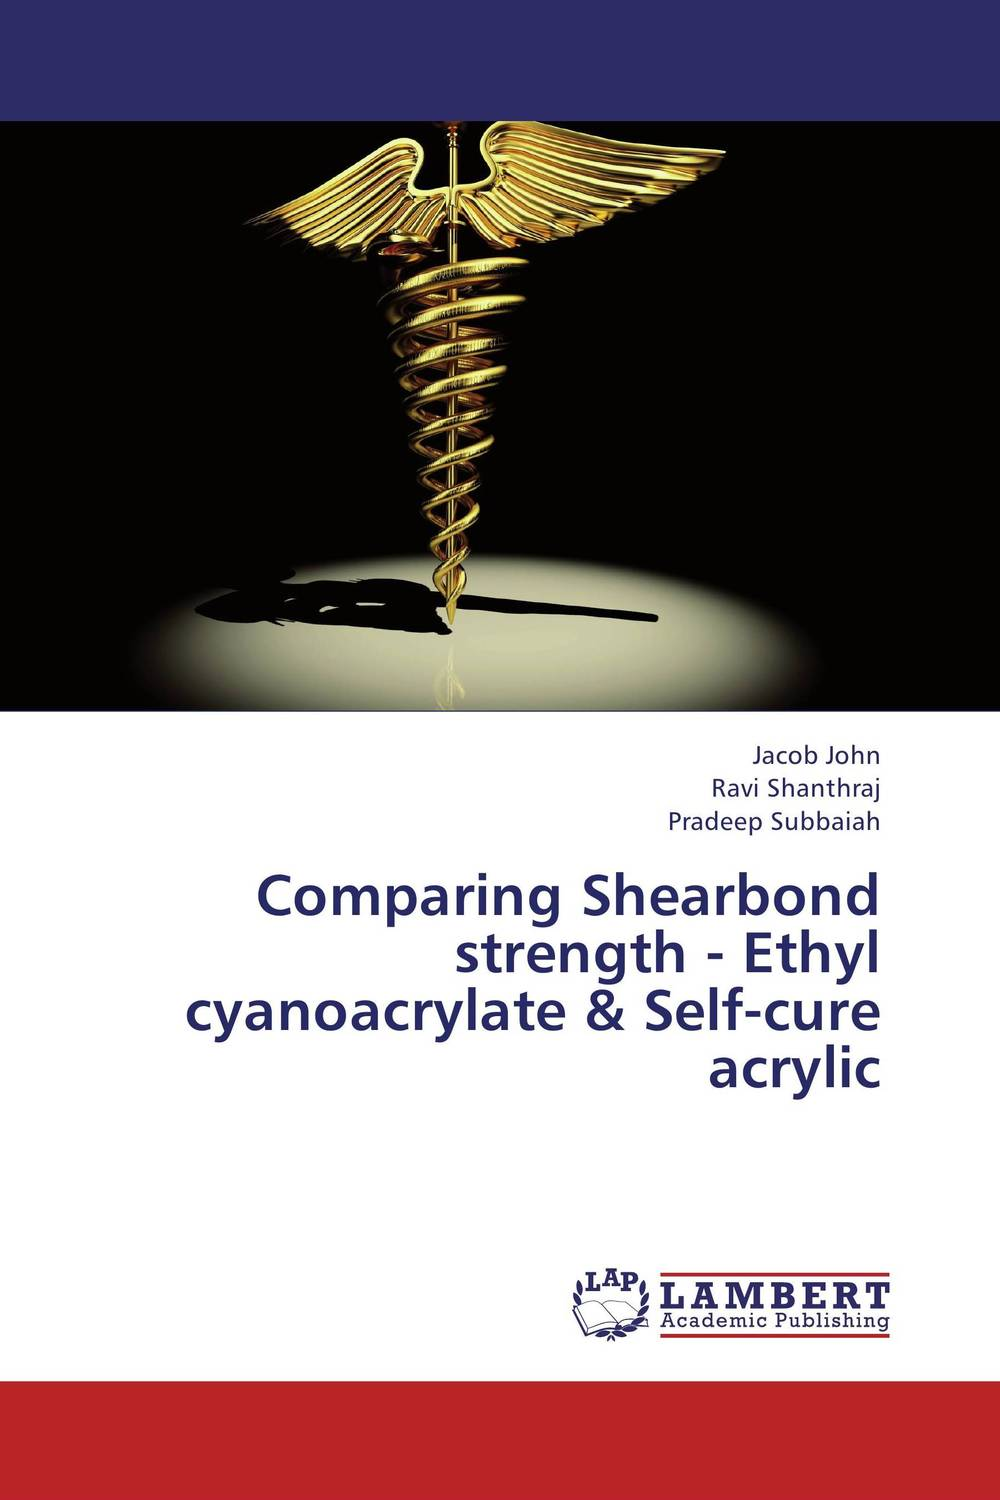 Comparing Shearbond strength - Ethyl cyanoacrylate & Self-cure acrylic treatment effects on microtensile bond strength of repaired composite